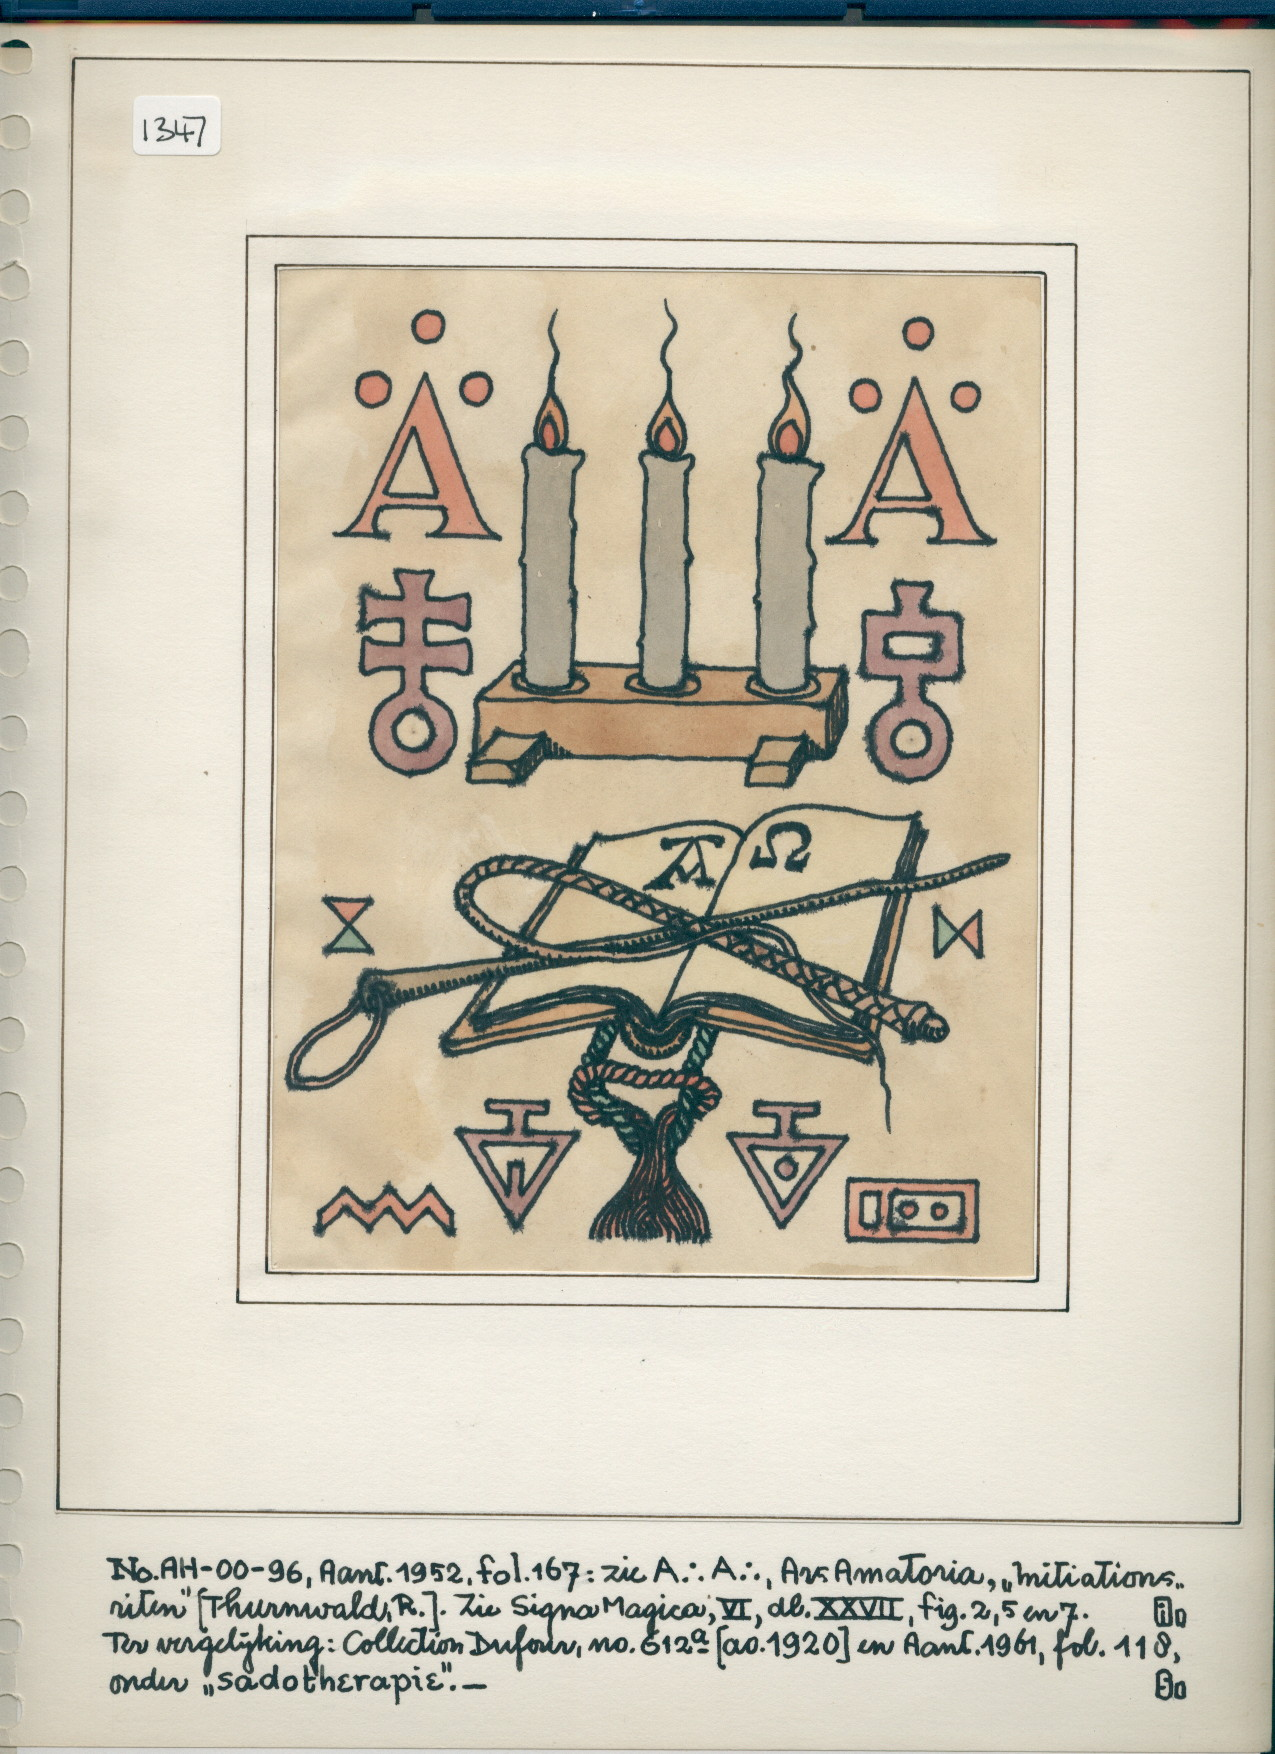 R/11/1347 - print of open book with alpha & omega, 2 whips